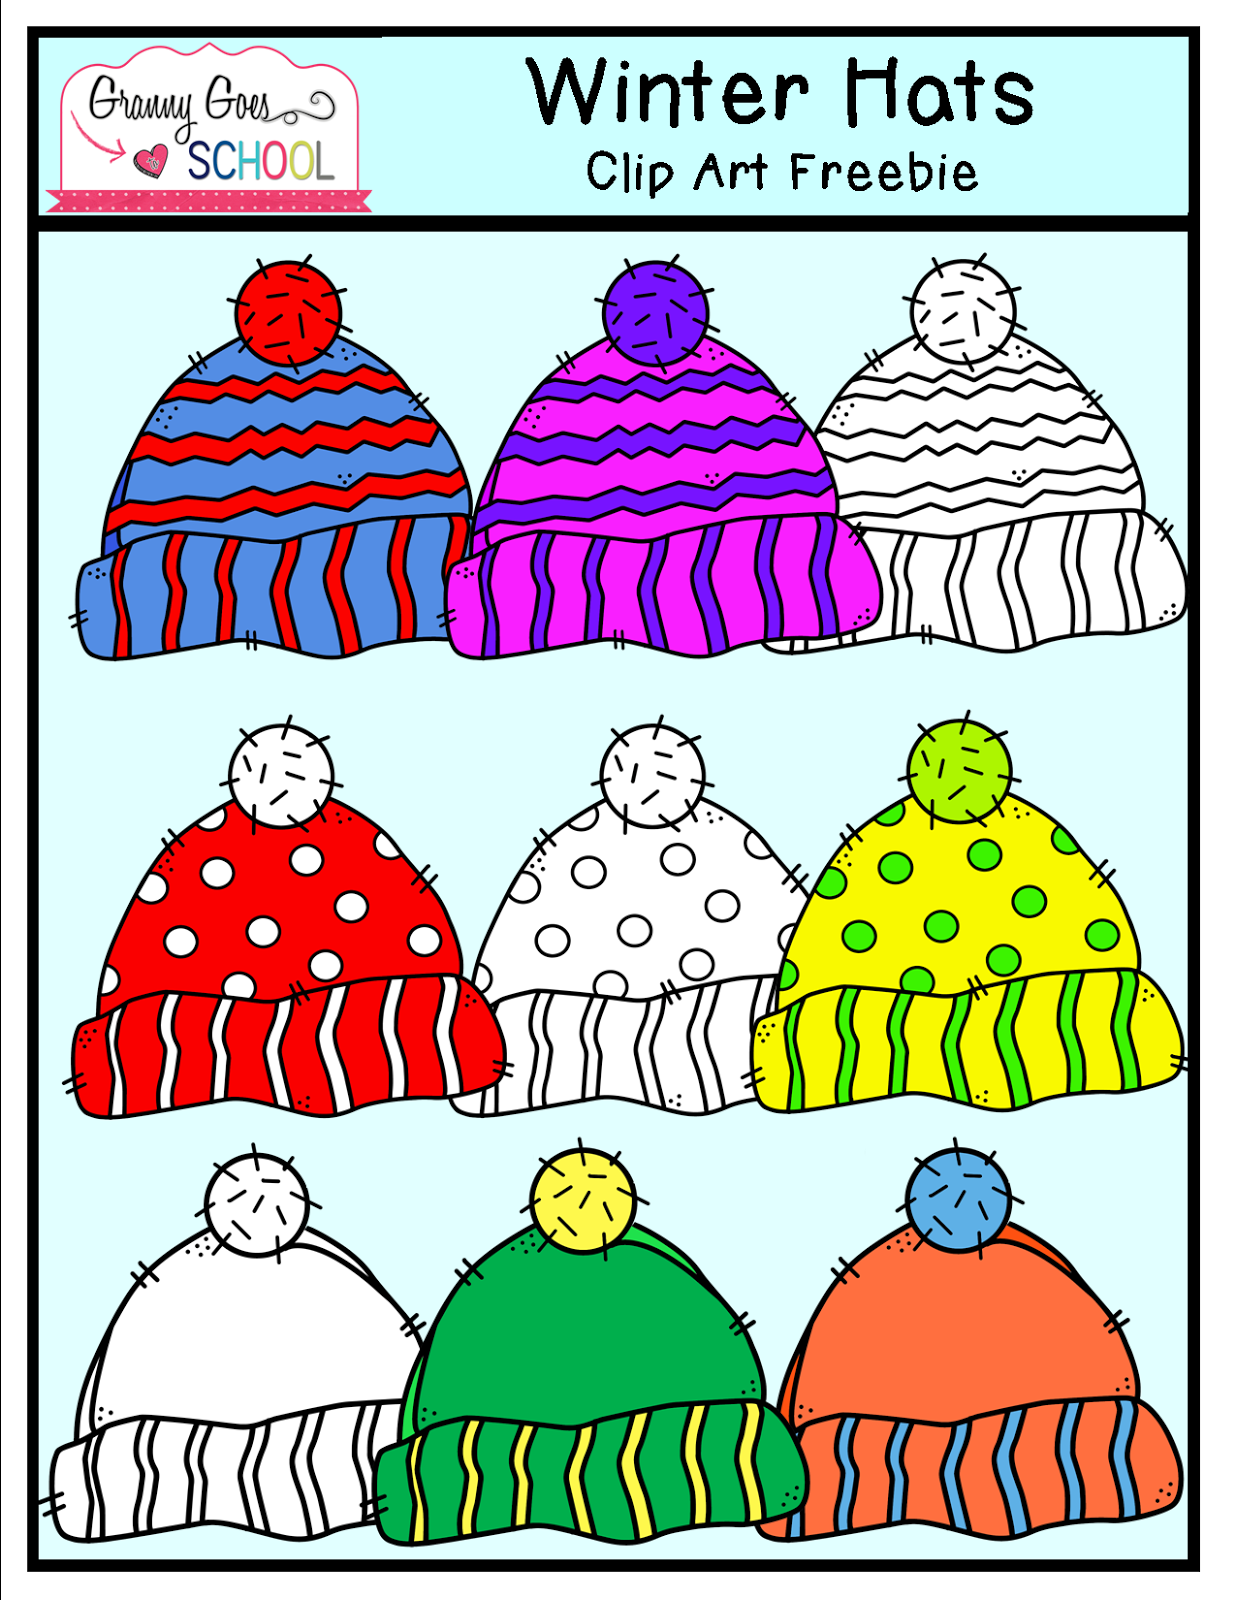 http://www.teacherspayteachers.com/Product/Winter-Hats-Clip-Art-FREEBIE-1628534